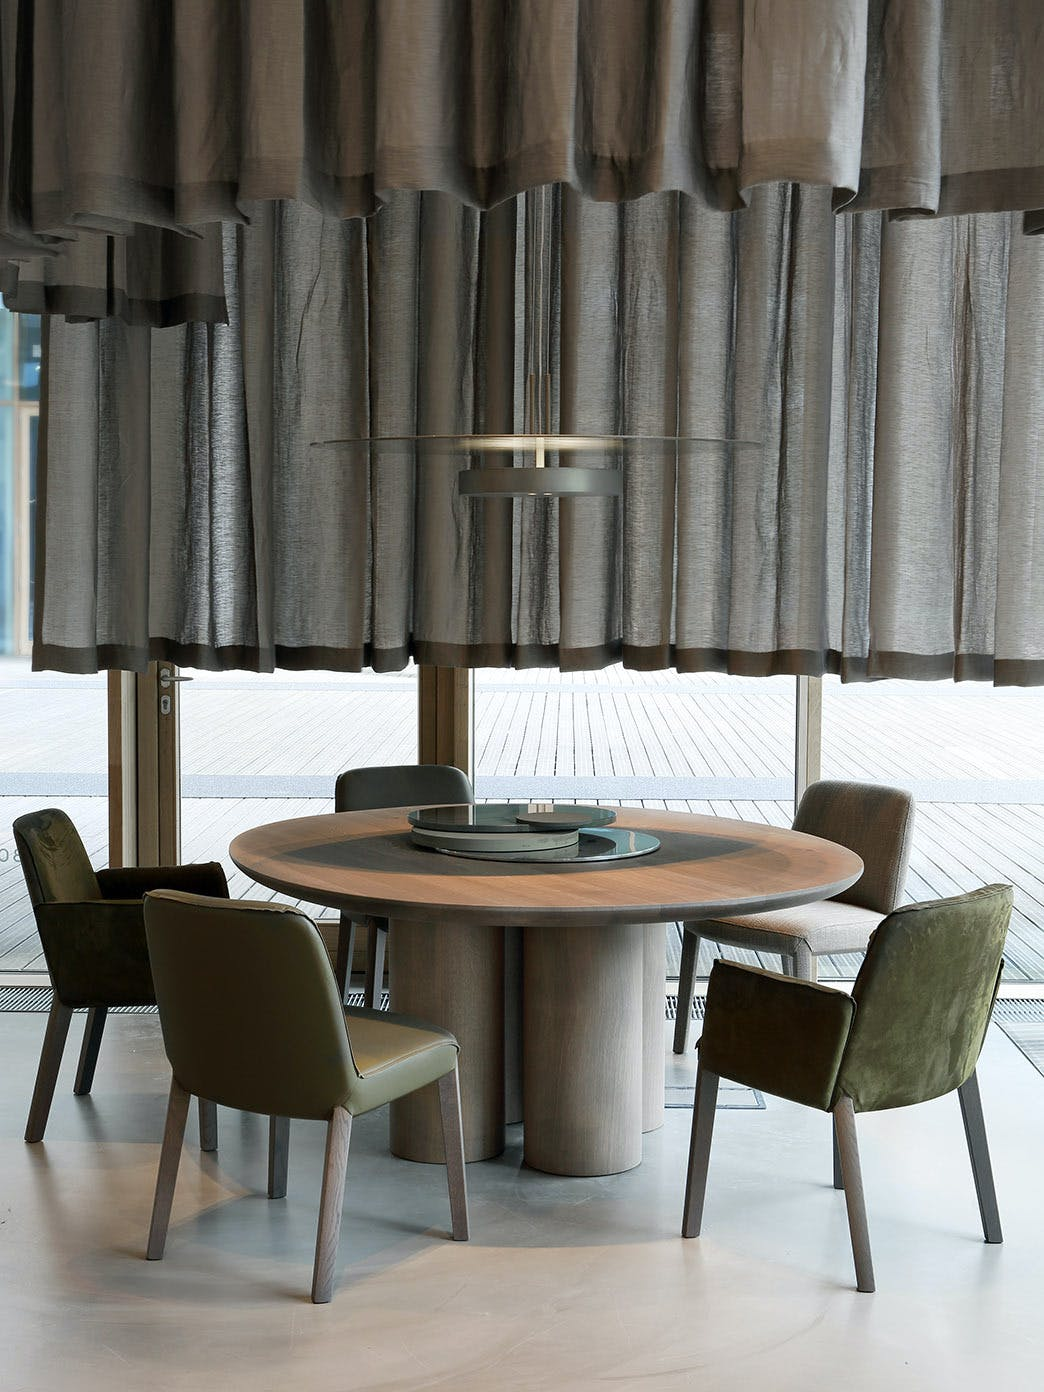 Product Design Dining Milan Furniture Fair 2017 Olle Table Minne Chair Ec 006 Tall